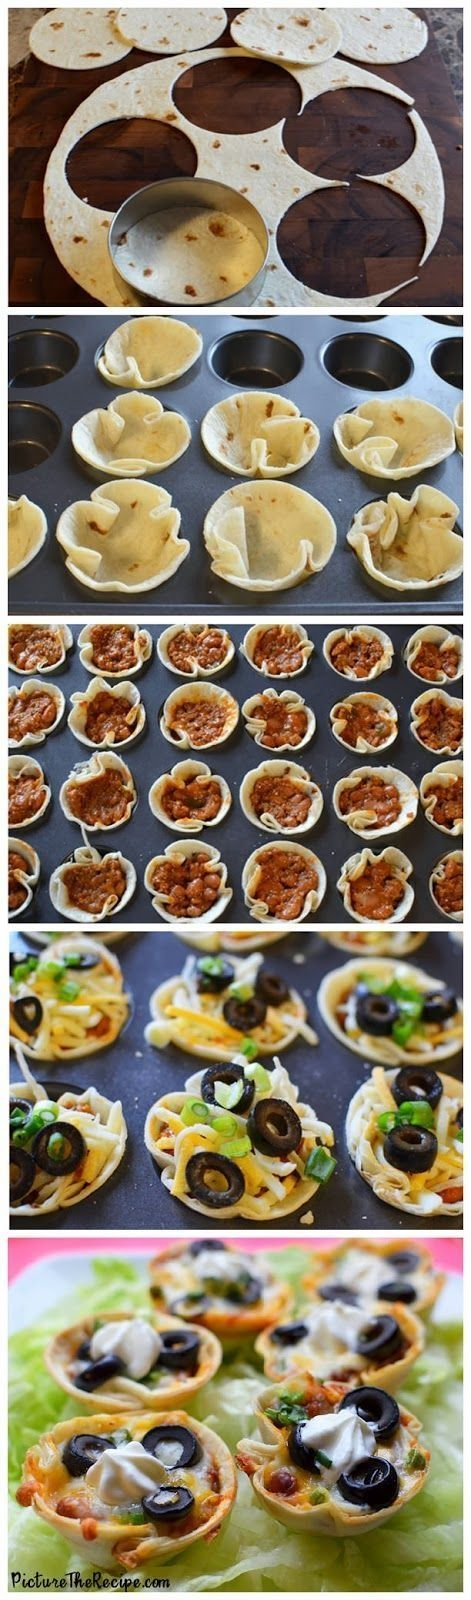 Mini Mexican Pizzas - Superbowl! by Graybird